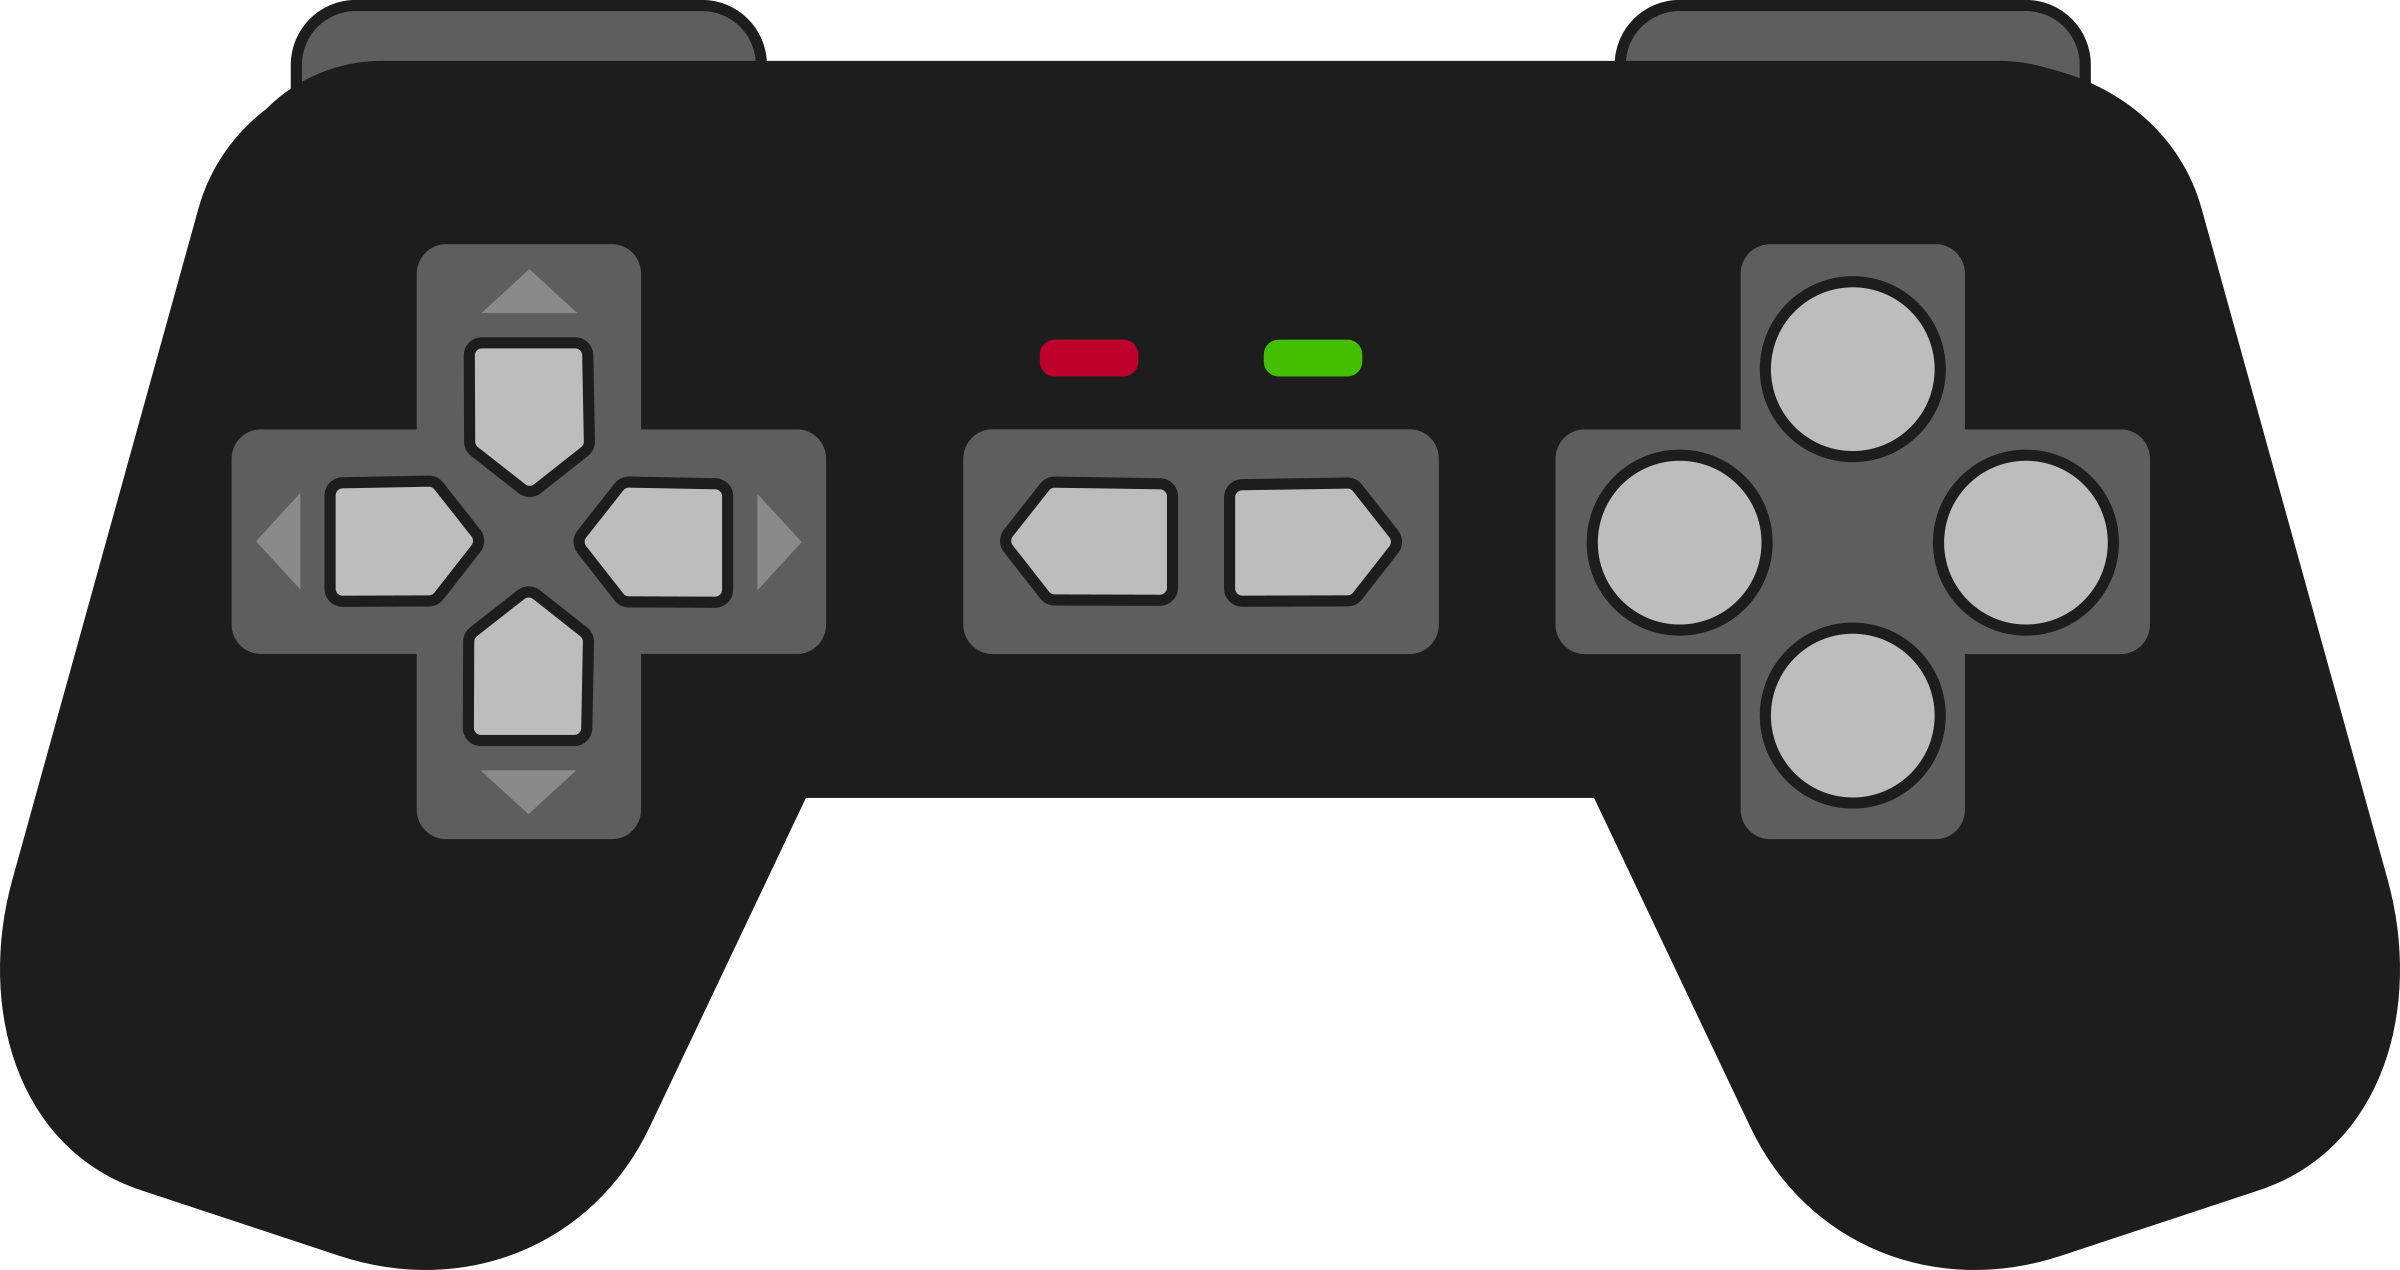 Gamepad black icons png. Gaming clipart ps3 controller